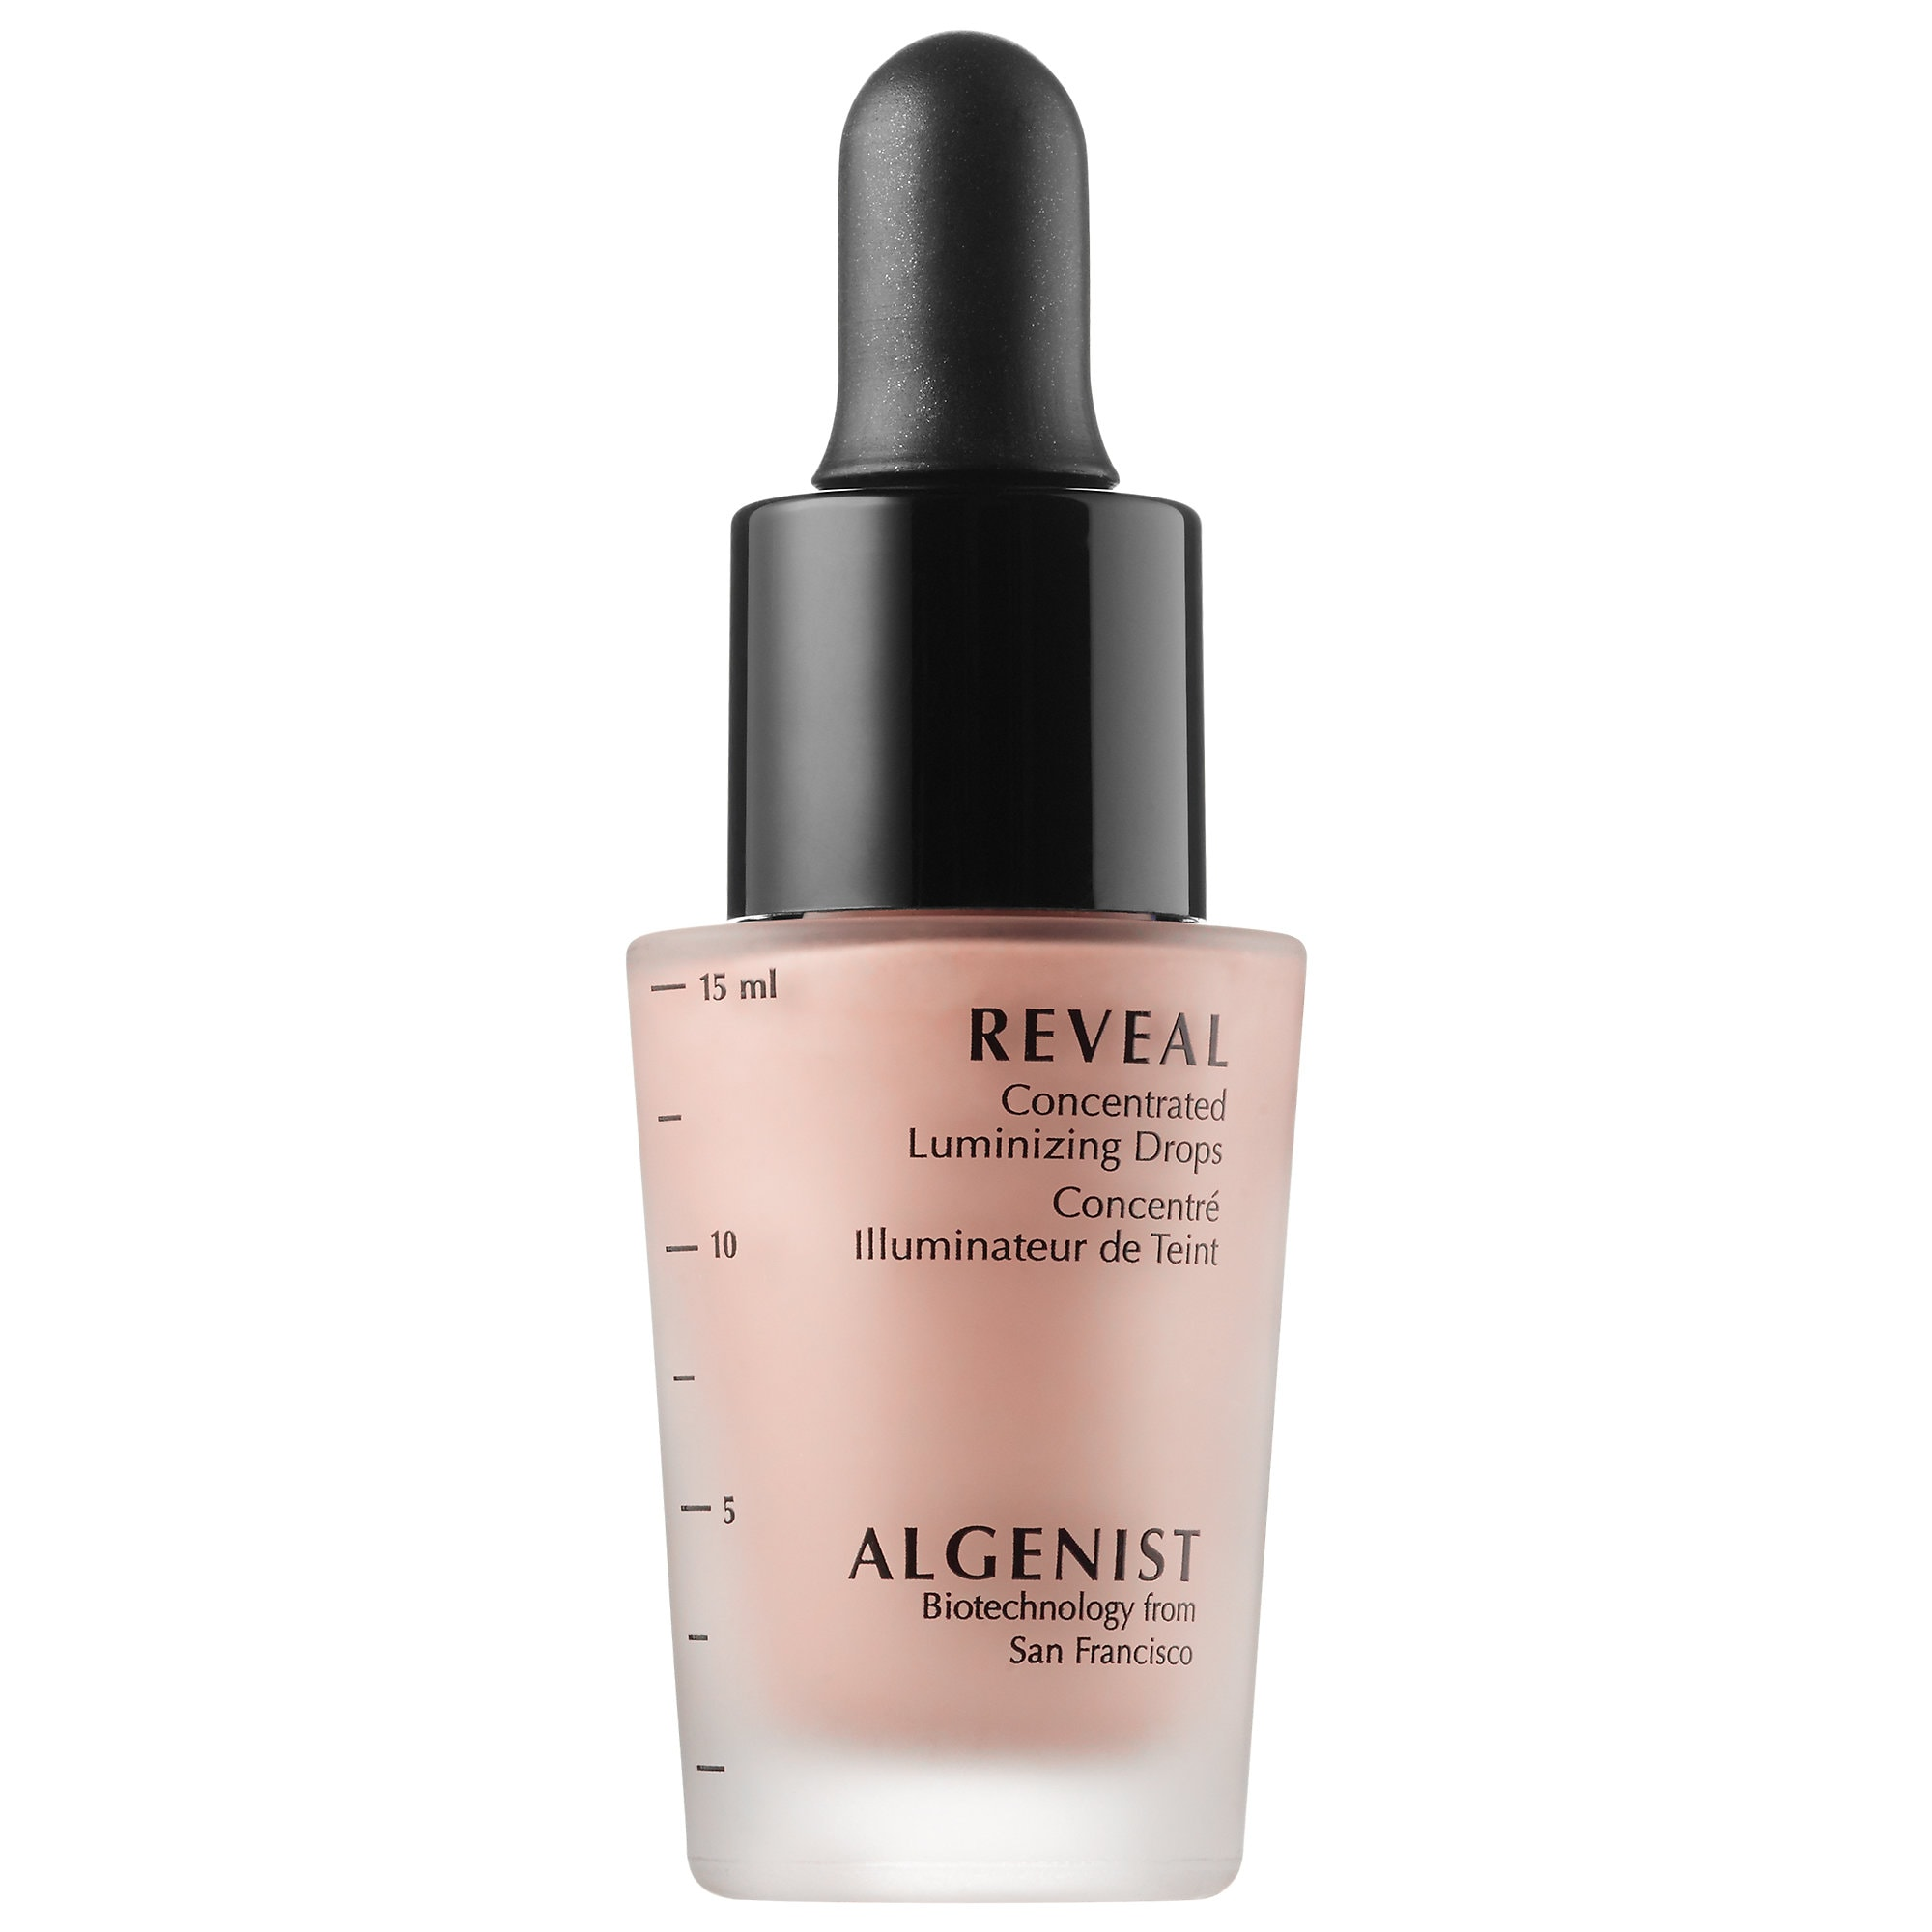 Algenist - REVEAL Concentrated Luminizing Drops